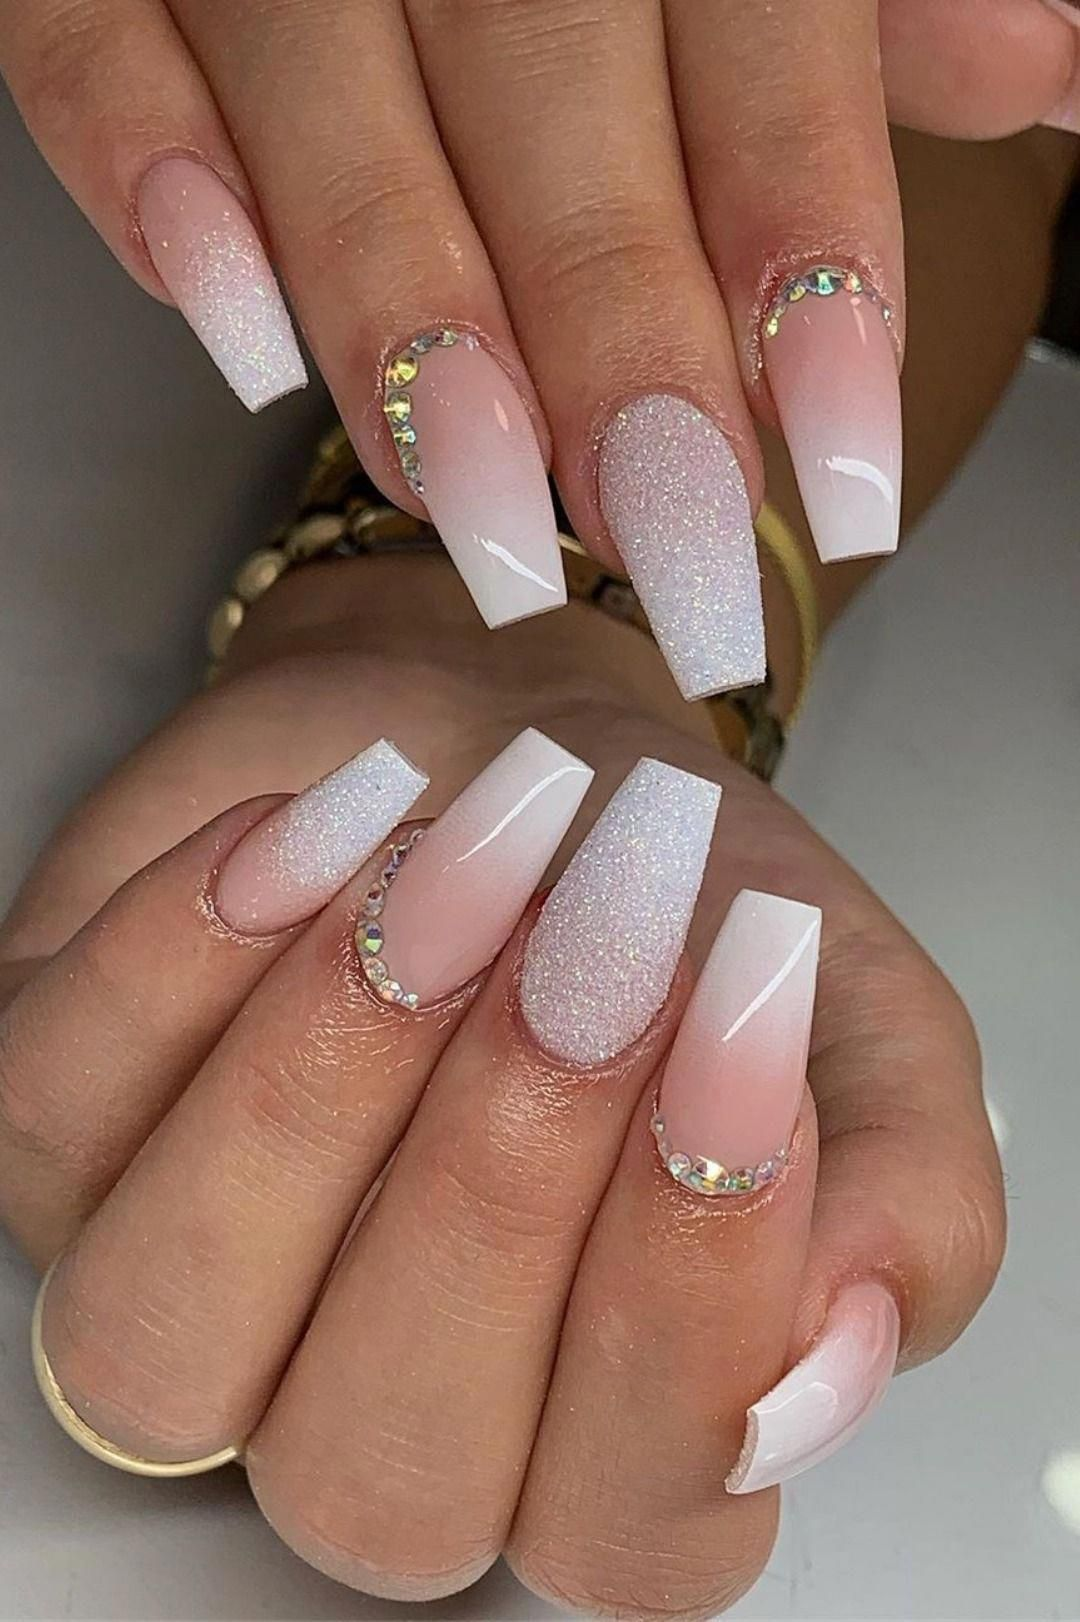 So Cute French Ombre Dip Nails Coffin Shaped With Glitter And Rhinestones Ombrenails In 2020 Ombre Nails Glitter Long Acrylic Nails Fake Nails